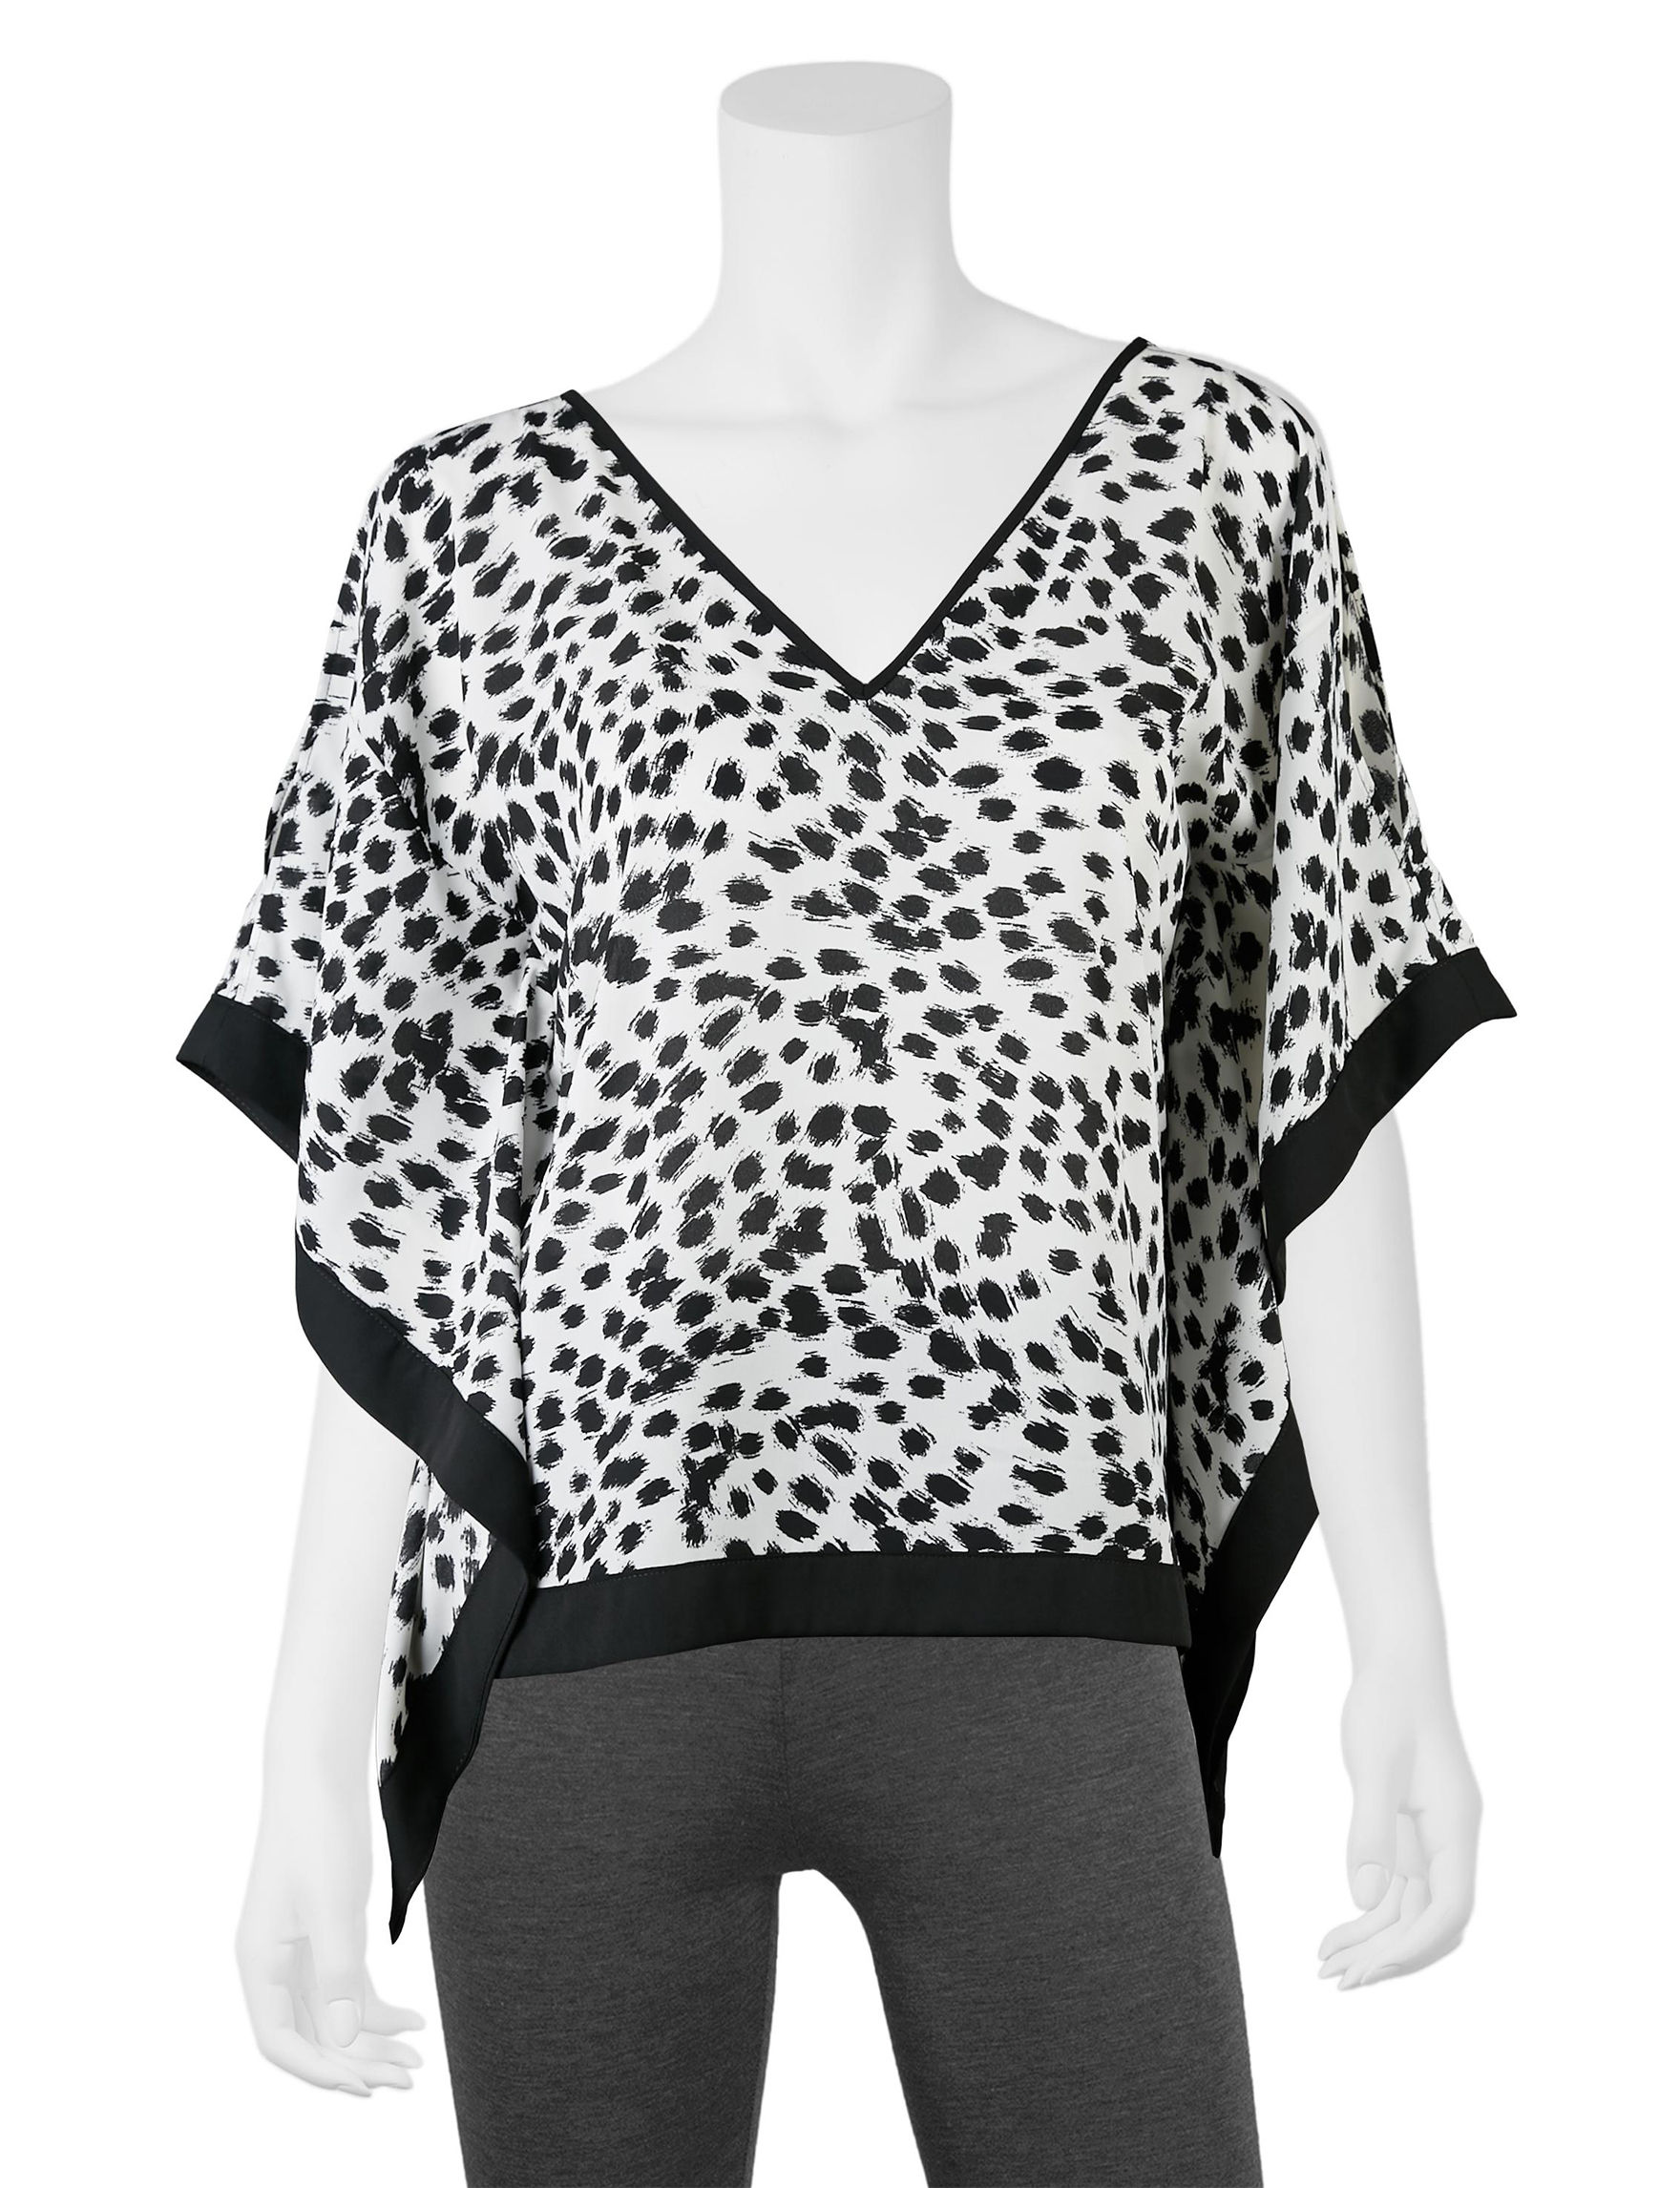 A. Byer Black / White Shirts & Blouses